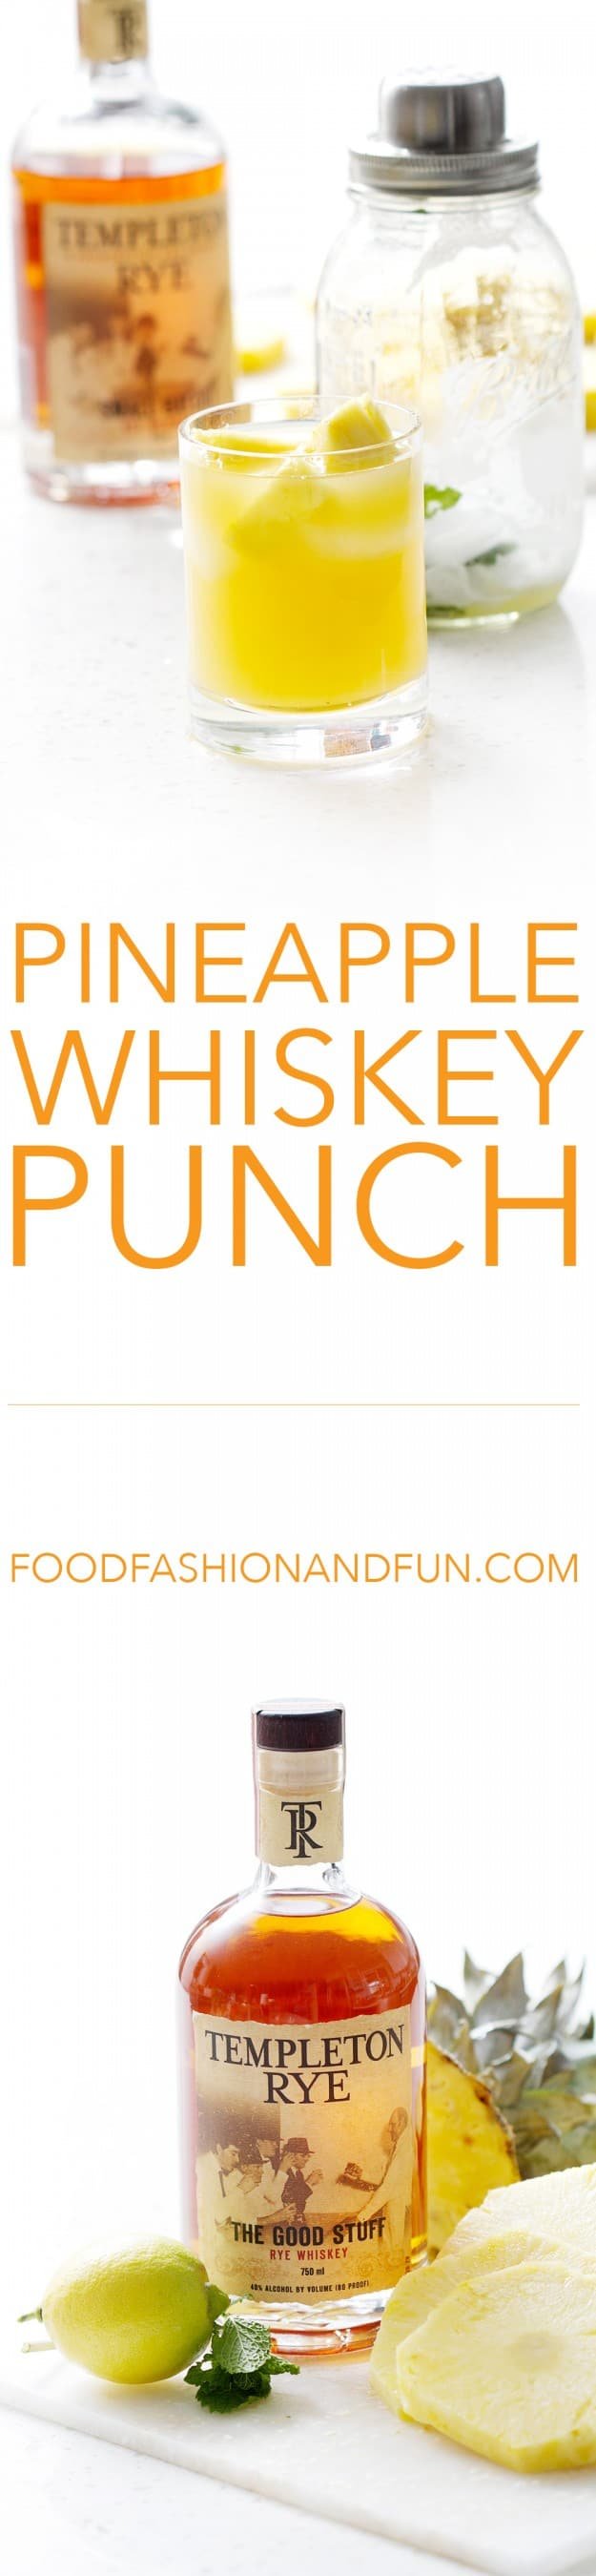 Pineapple Whiskey Punch